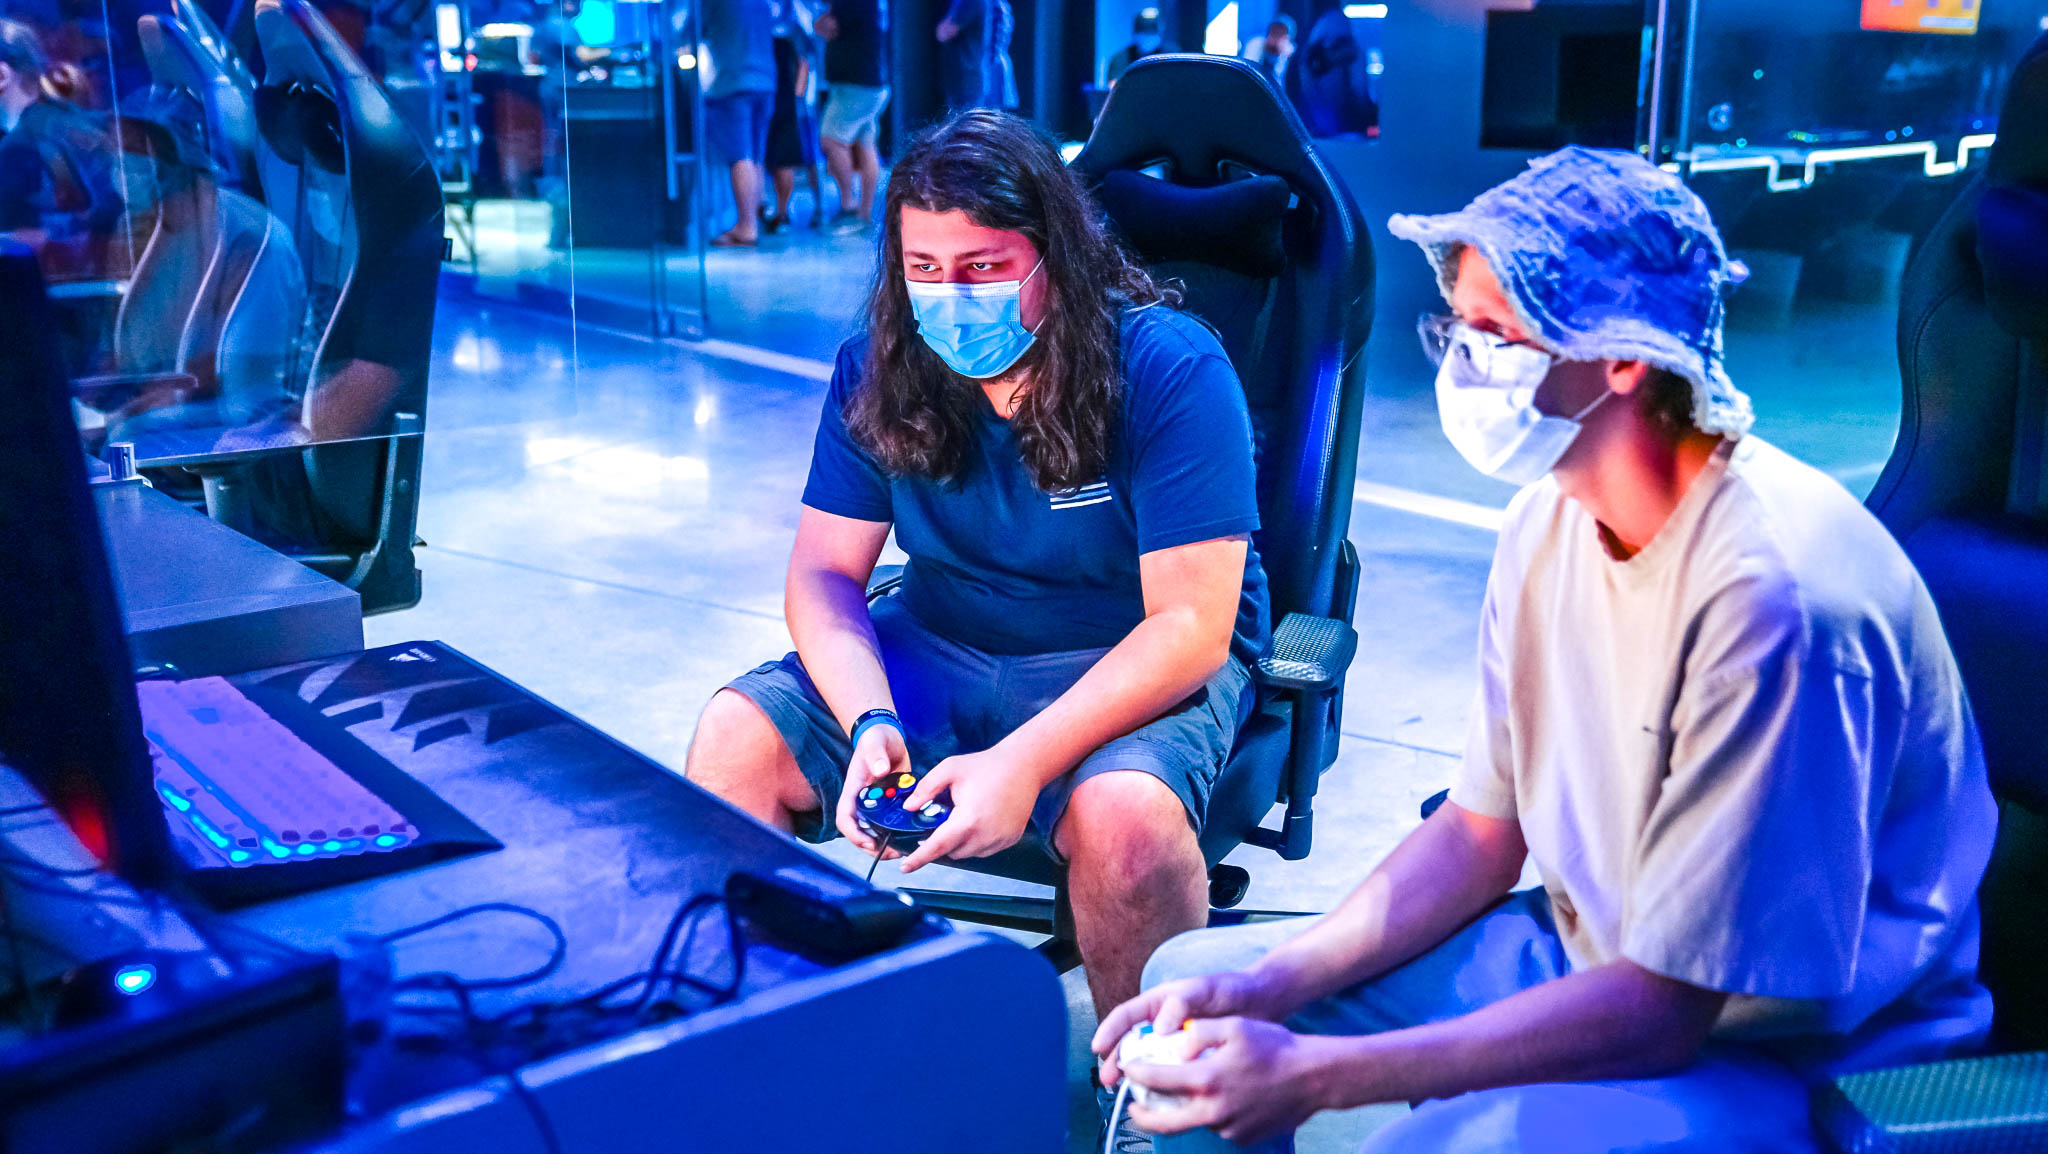 Two people playing a video game in the Clash eSports Center